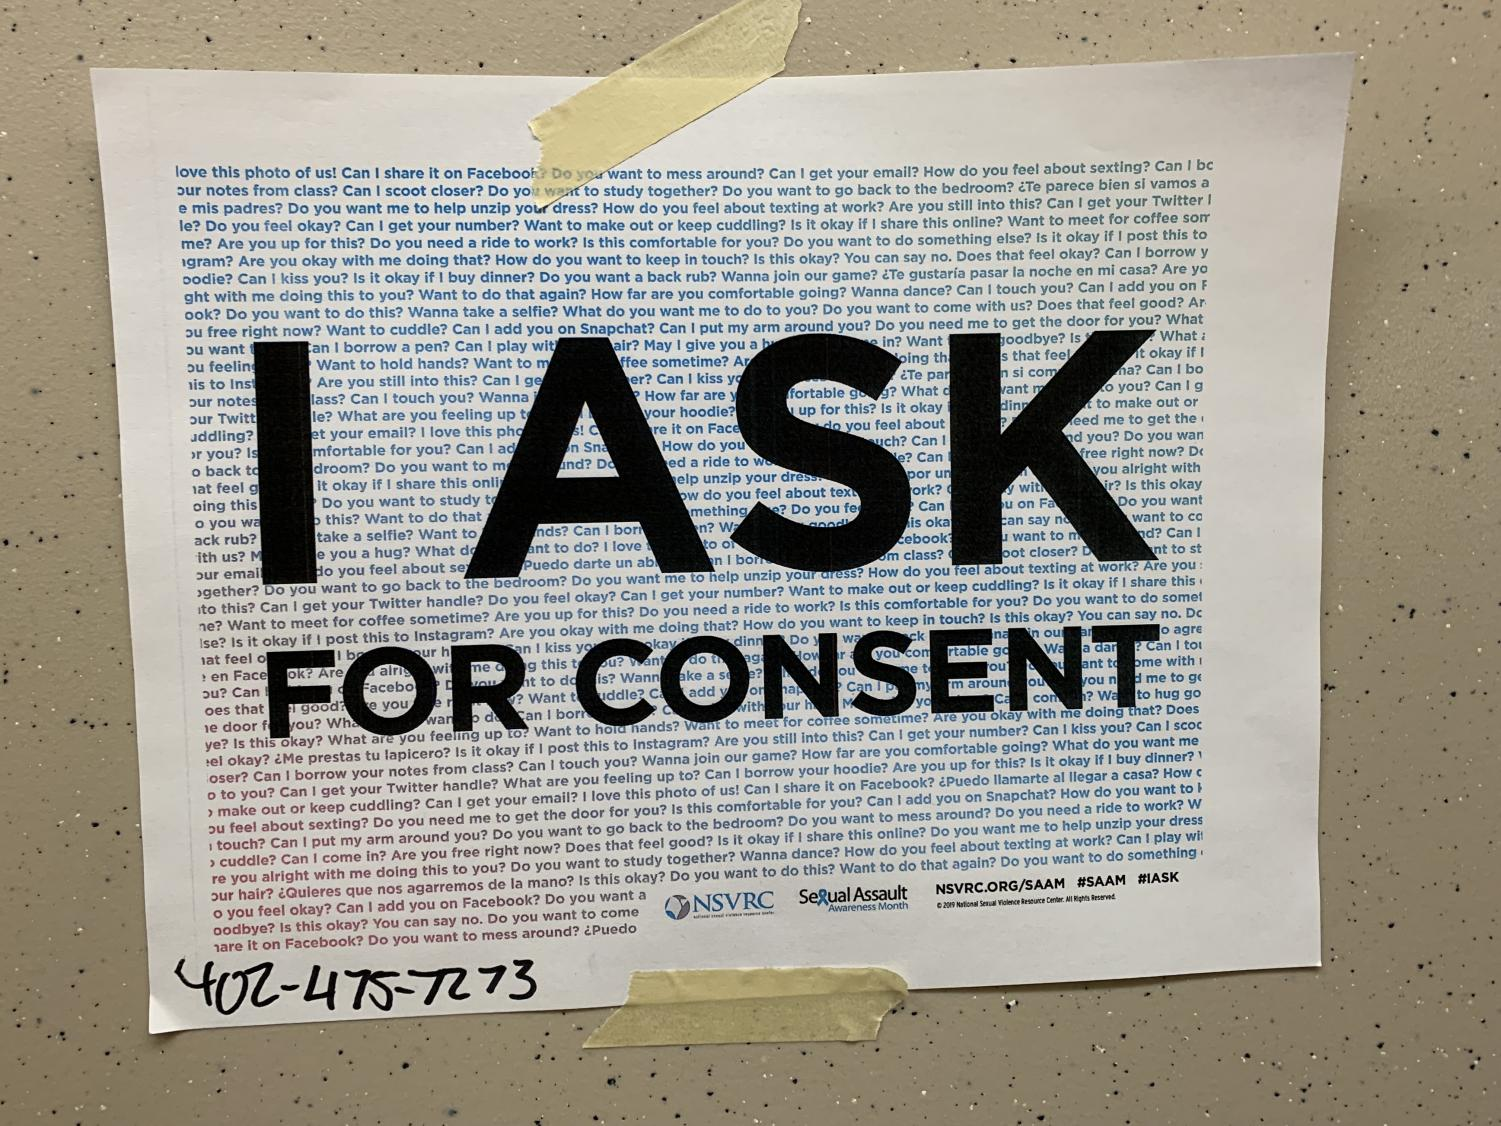 Signs like this are scattered around Lincoln High, emphasizing the importance of consent. The phone number at the bottom is to the Voices of Hope Crisis Hotline, which provides crisis intervention to victims of sexual assault and abuse.